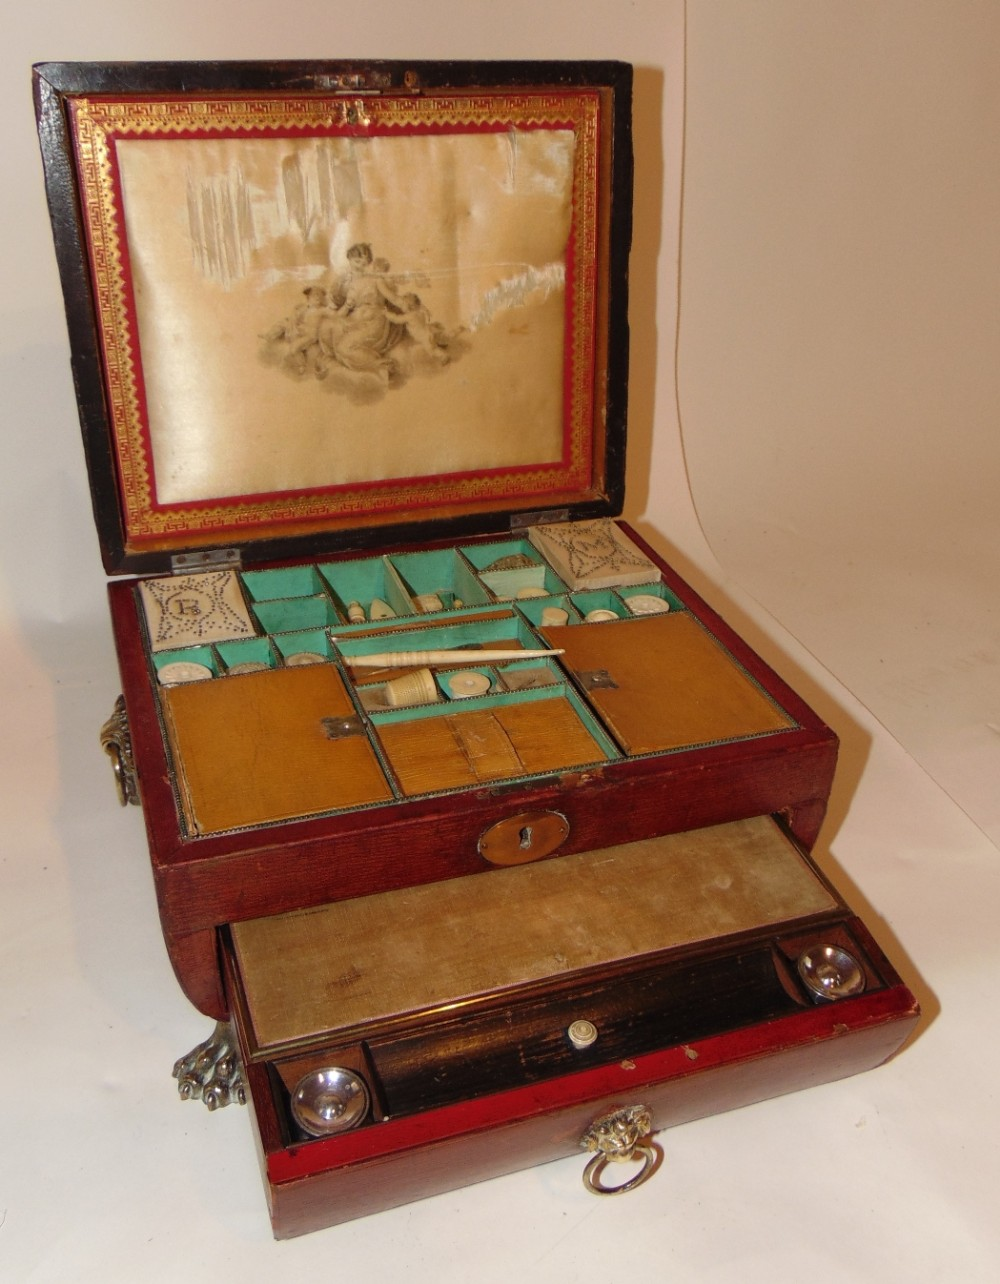 regency leather bound workwriting box circa 1820